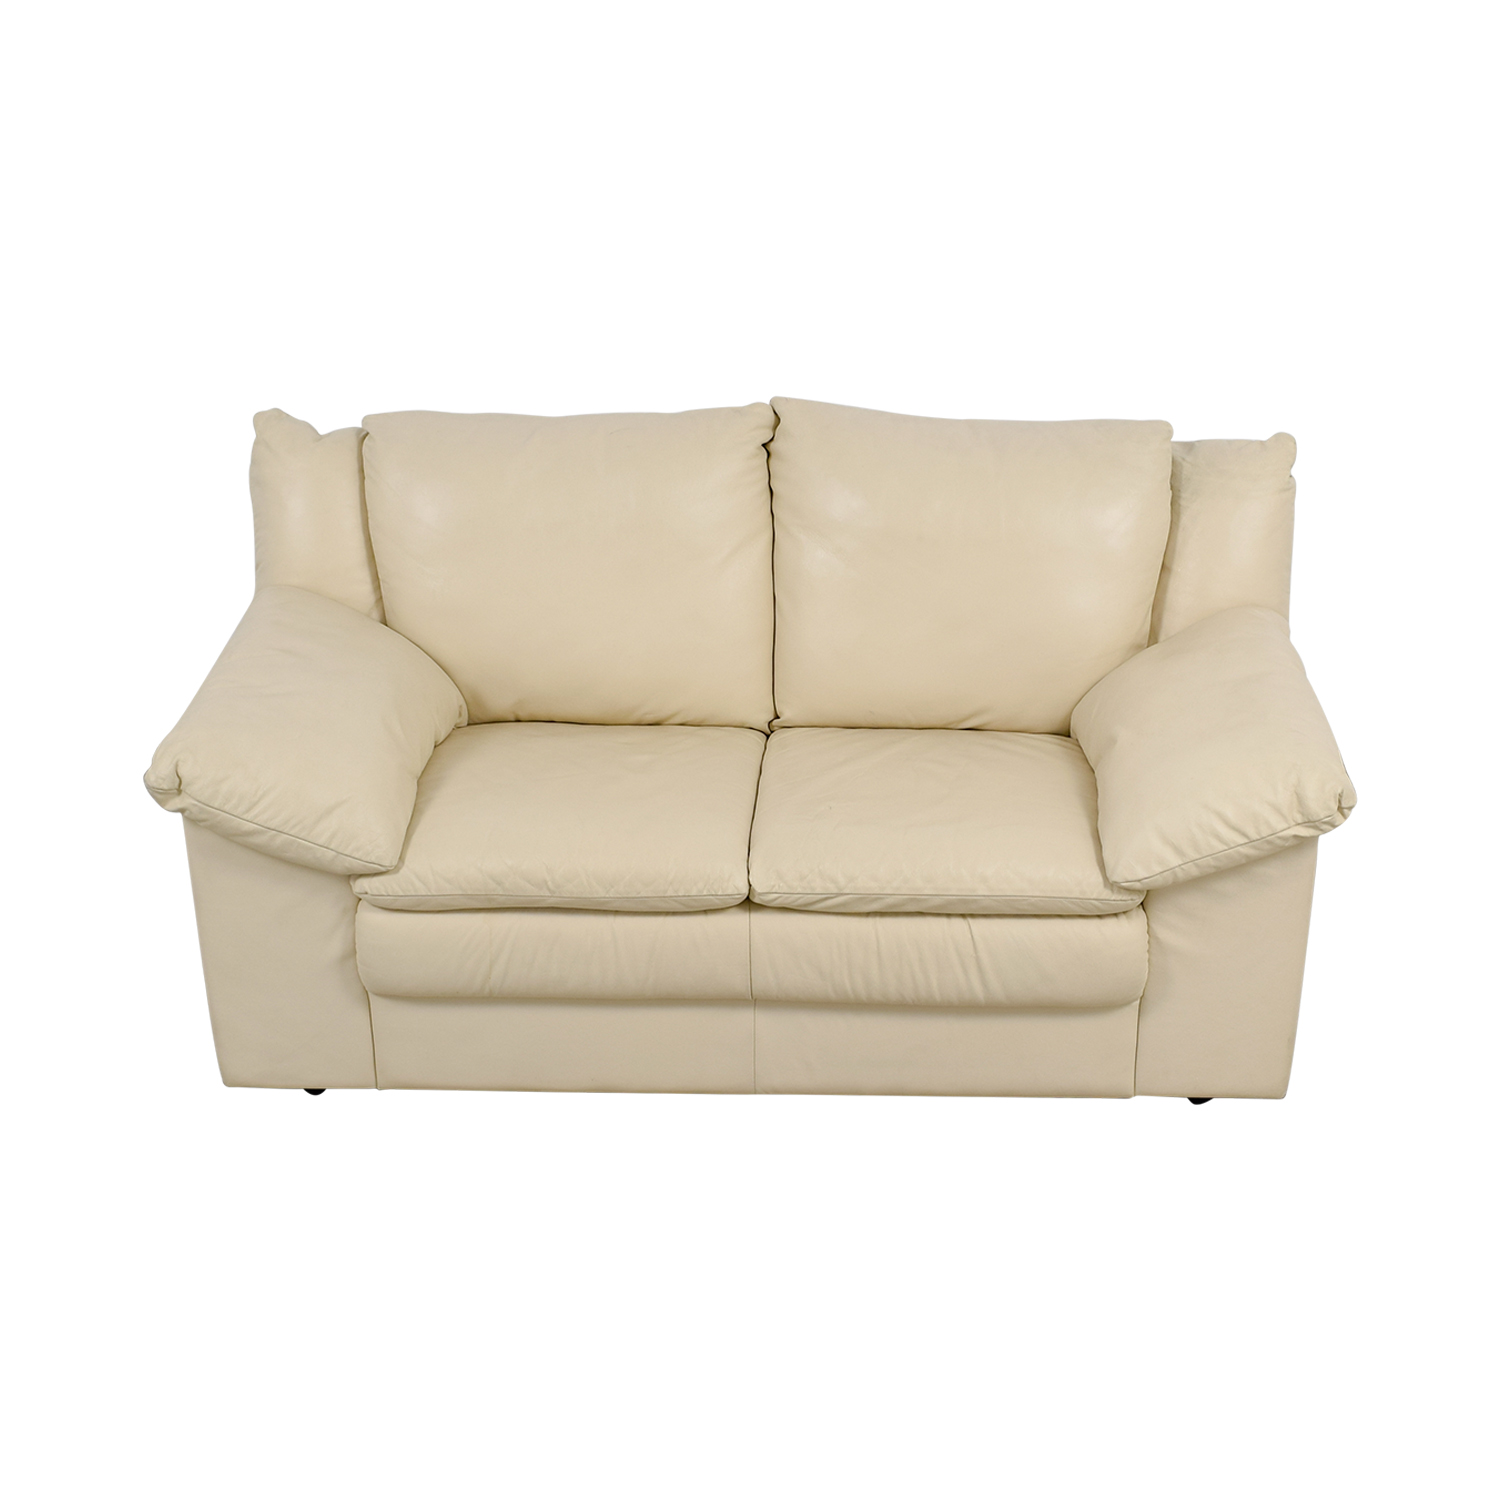 Scan Design Furniture Scan Design Leatherette Loveseat Loveseats